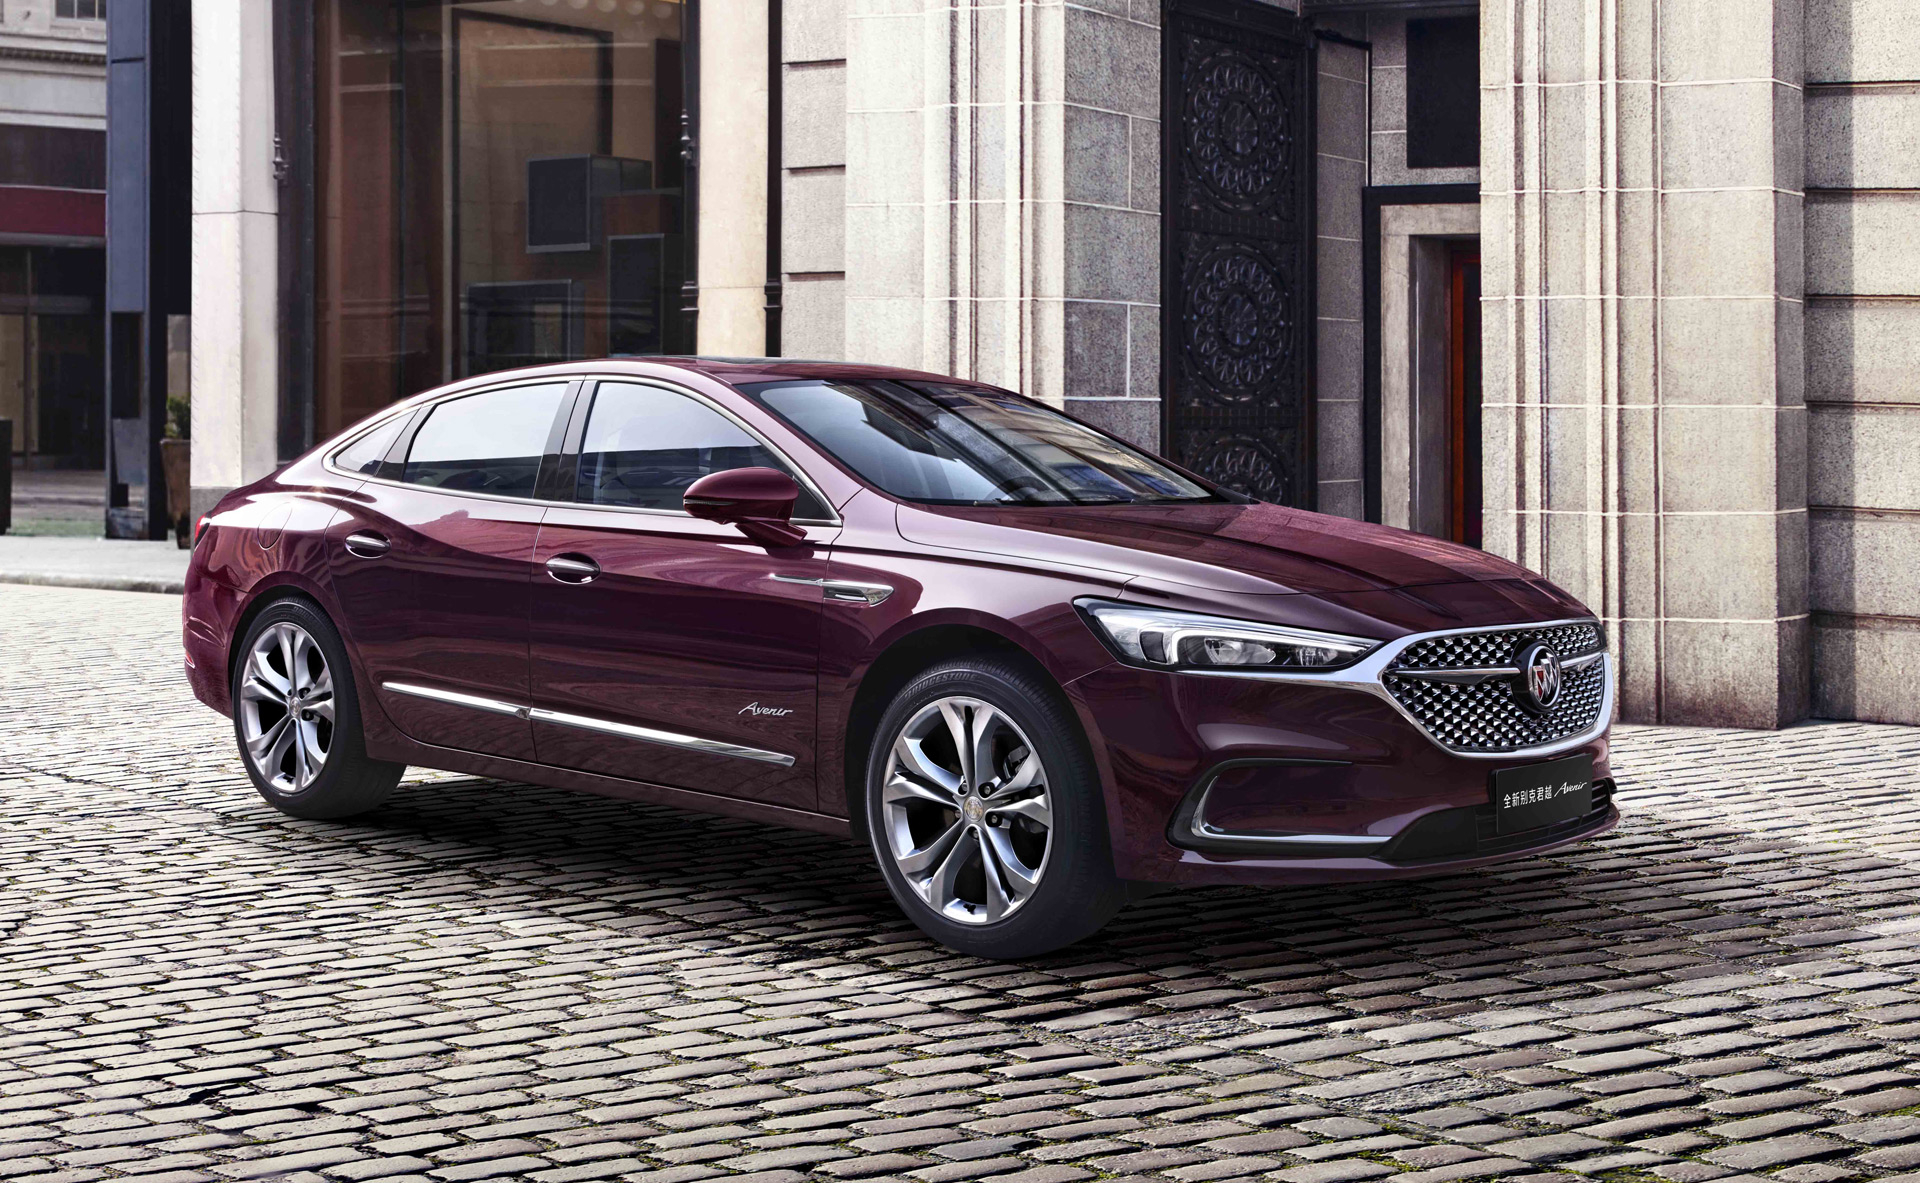 2020 Buick Lacrosse Made Handsome Just As It's Dropped In Us When Will The New 2022 Buick Lacrosse Be Released